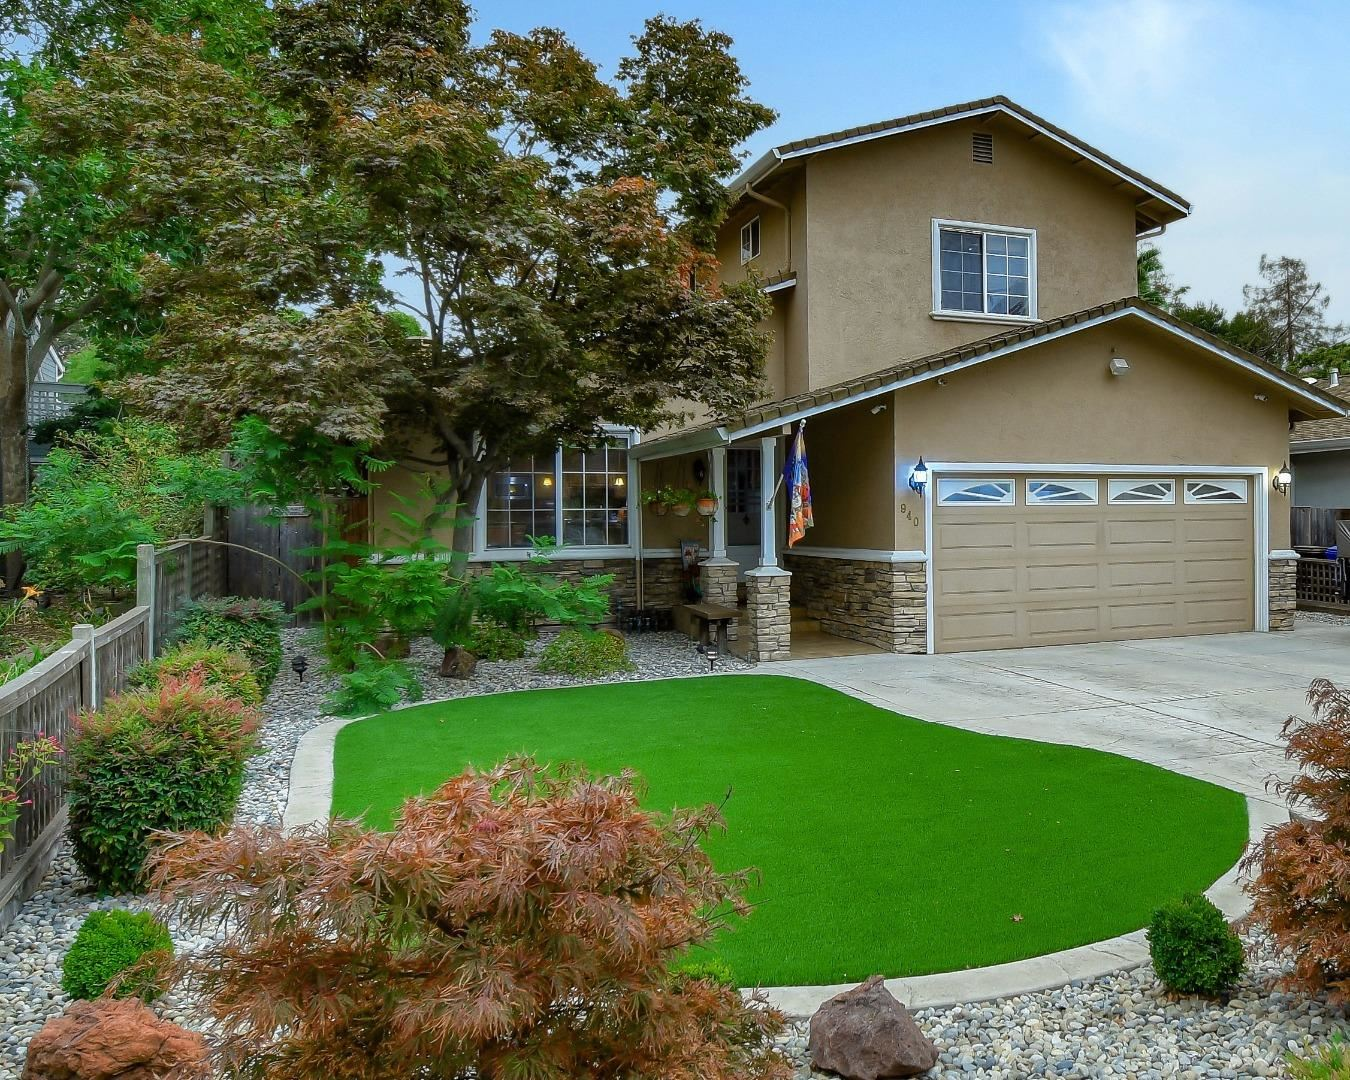 Photo for 940 Hazel AVE, CAMPBELL, CA 95008 (MLS # ML81810471)